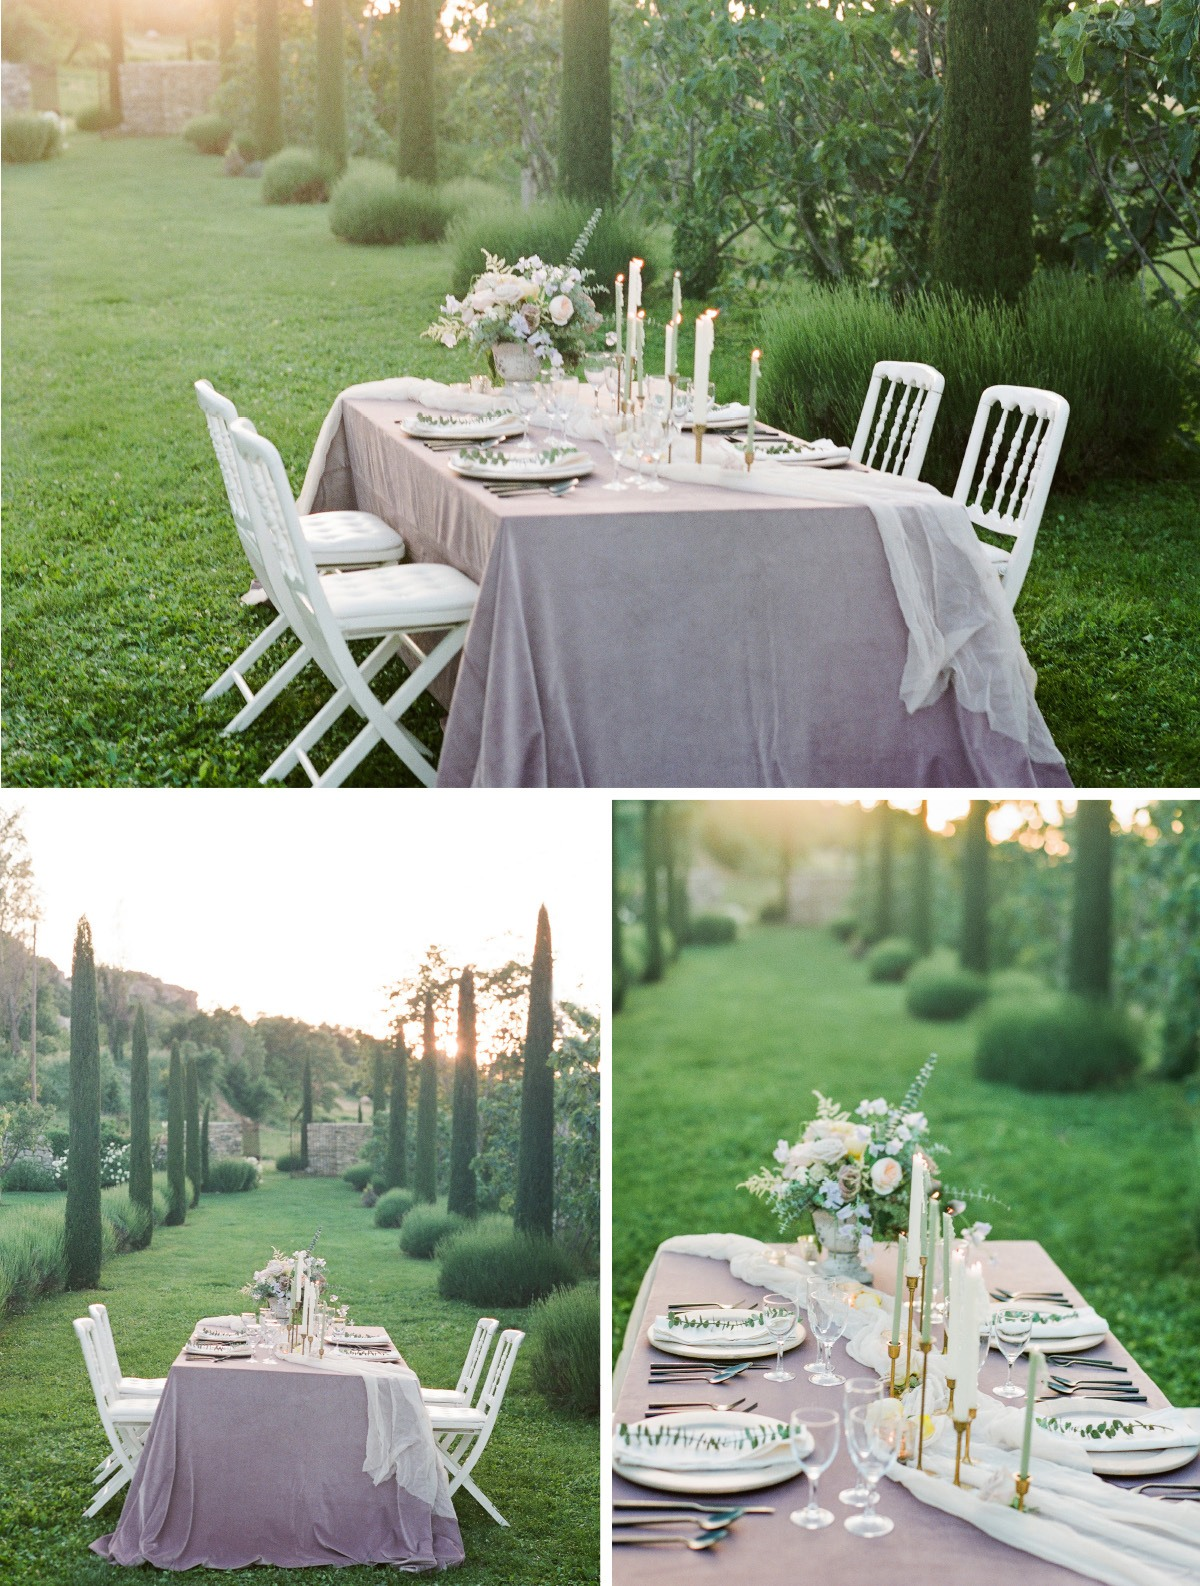 chair cover rentals langley wooden stackable church chairs wedding inspiration archives page 3 of 5 nuage designs our lilac velluto linen with its soft velvet feel set the base for table a wispy runner flowing in wind nod to textiles